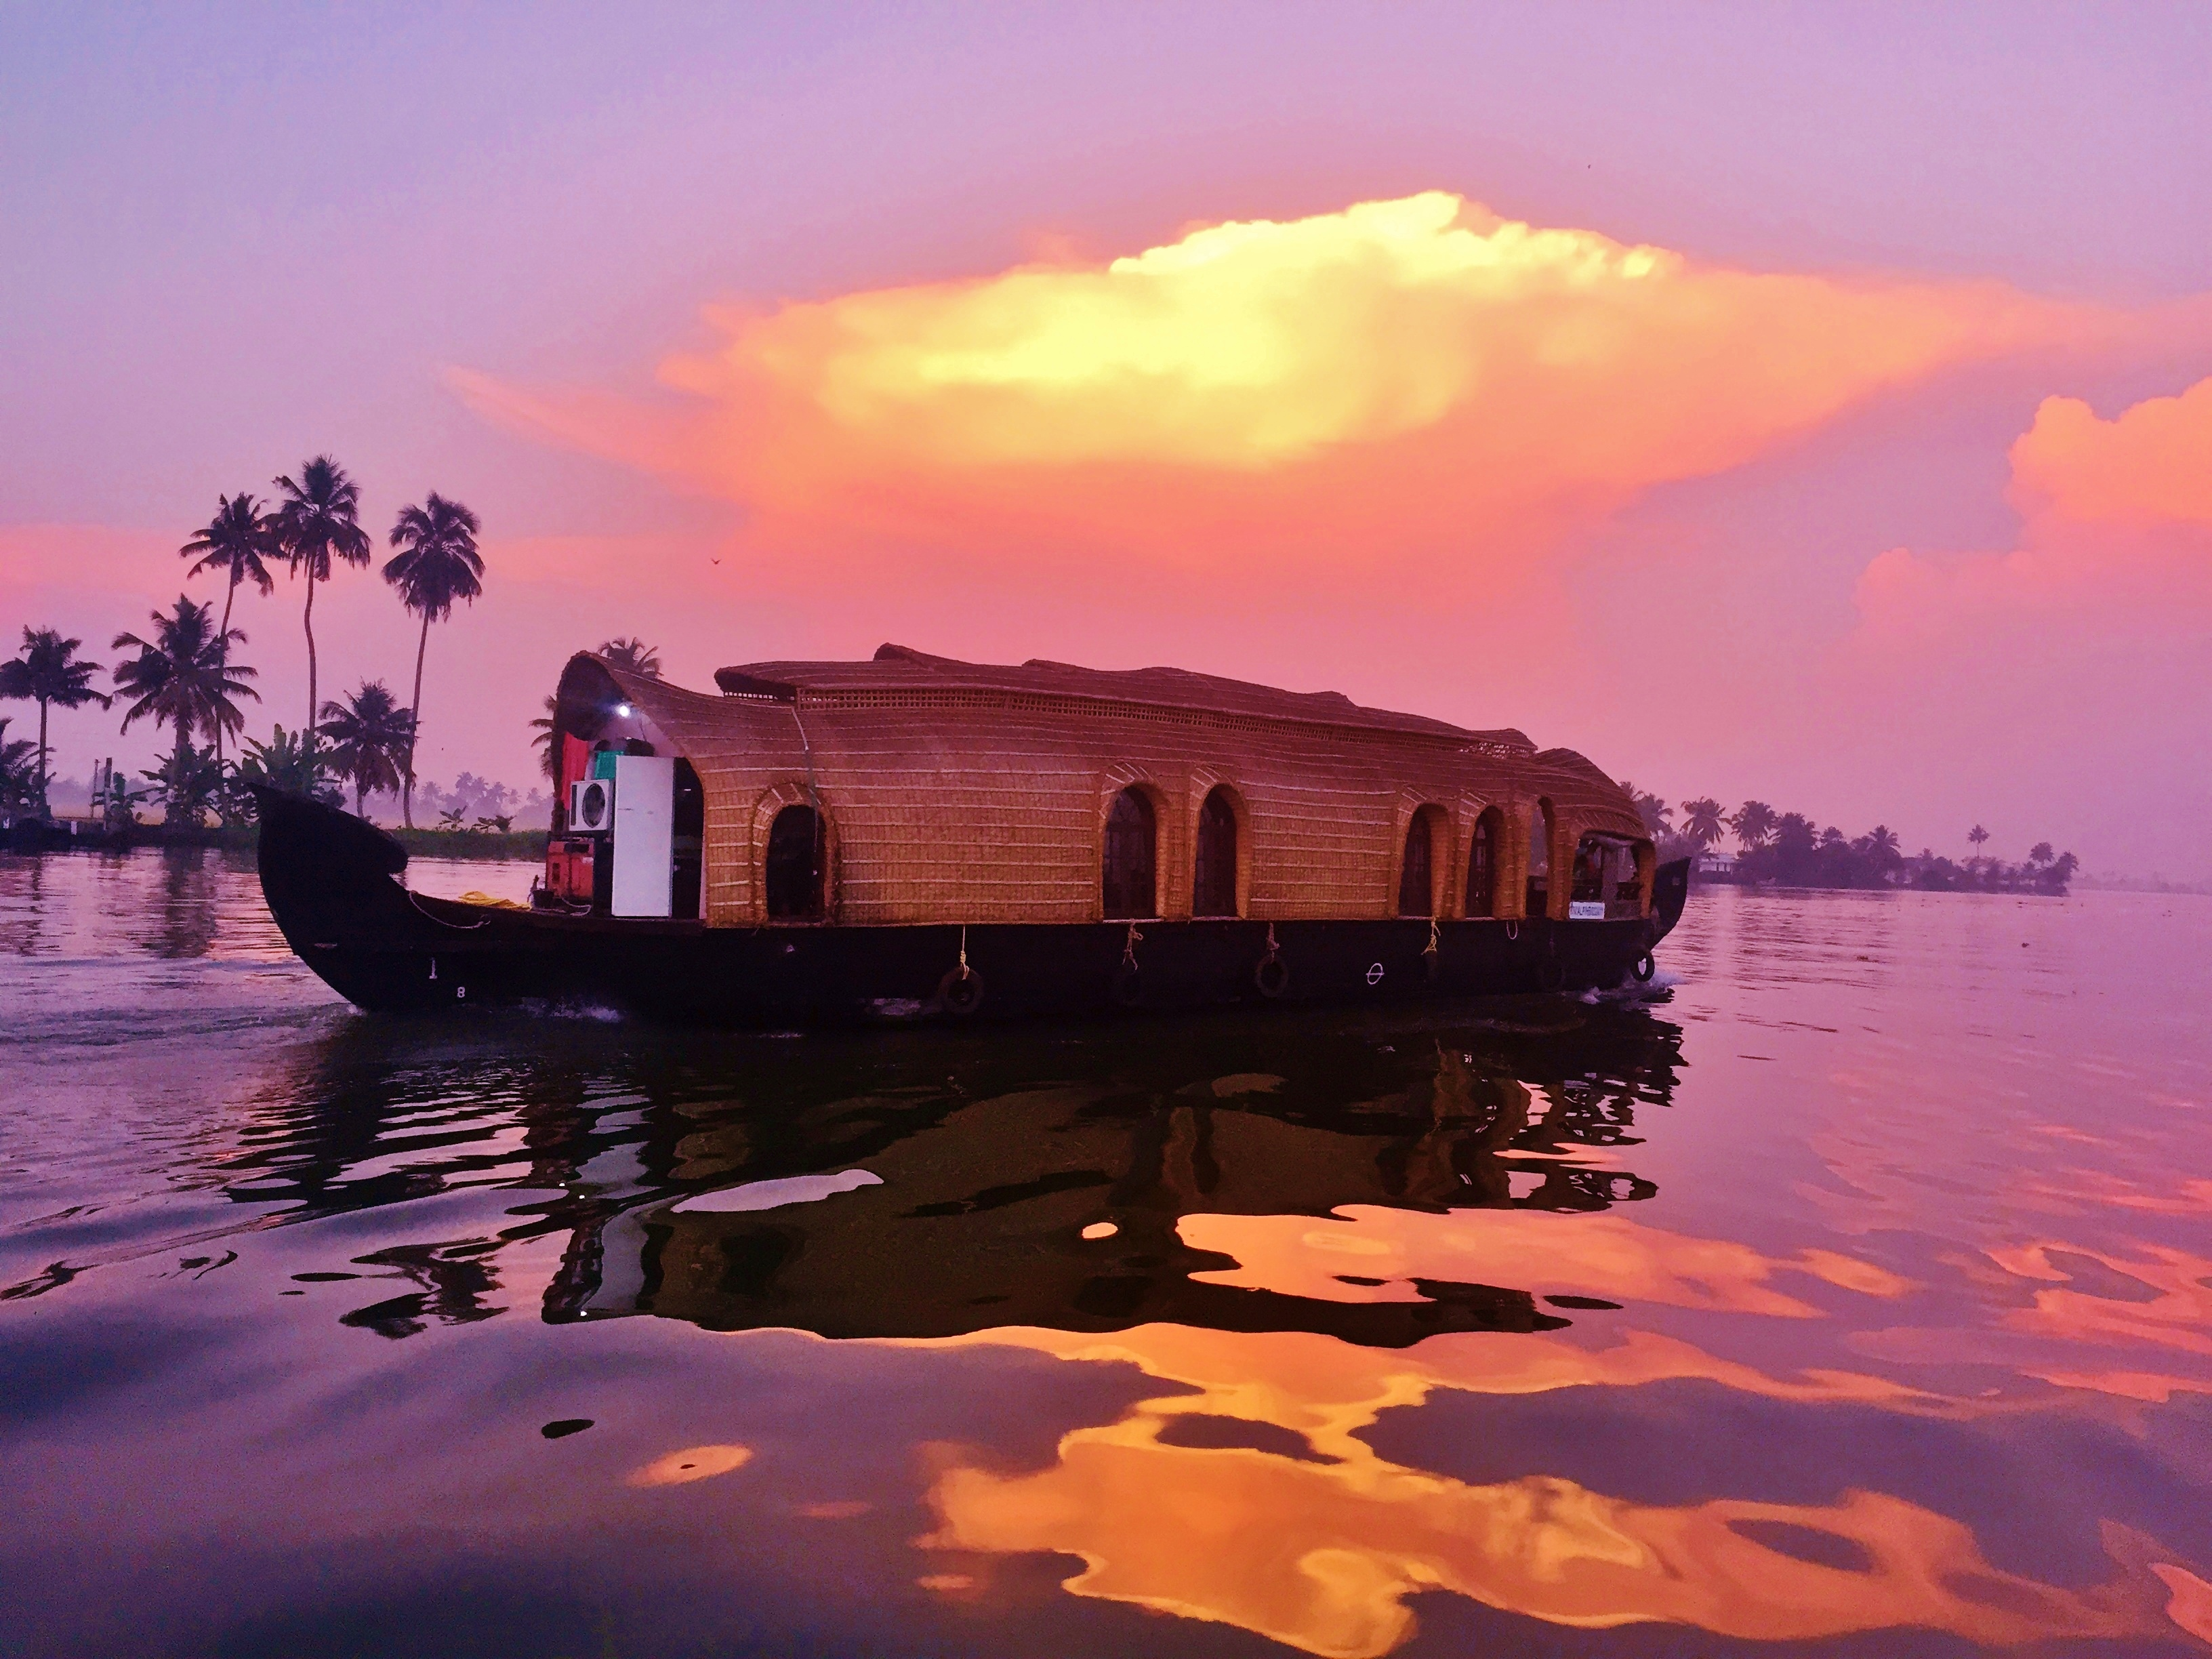 22 Photos That Will Make You Want To Visit The Backwaters Of Kerala NOW!